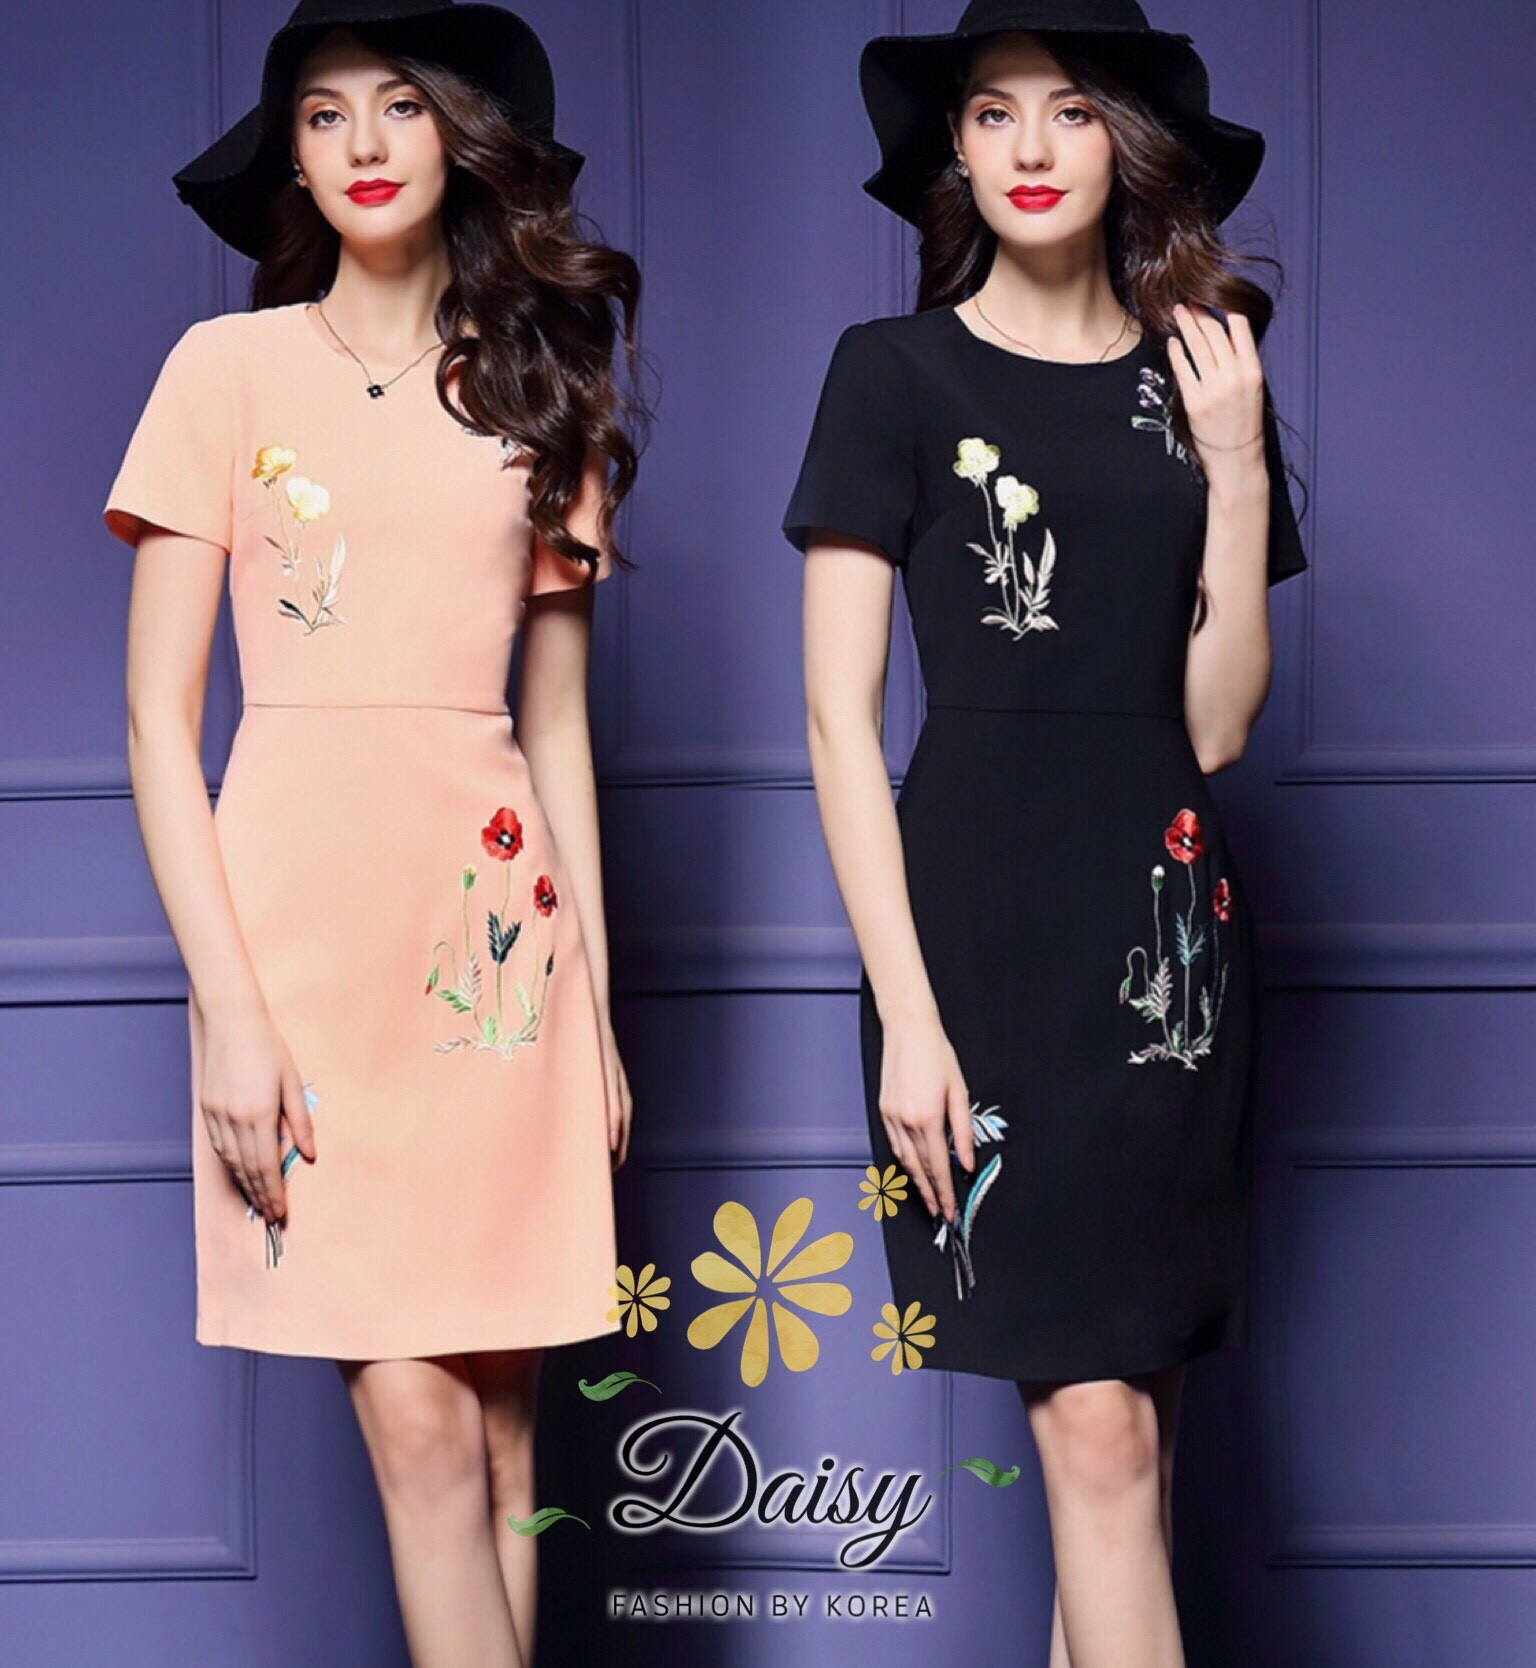 Daisy with satin texture smooth fabric lining dress